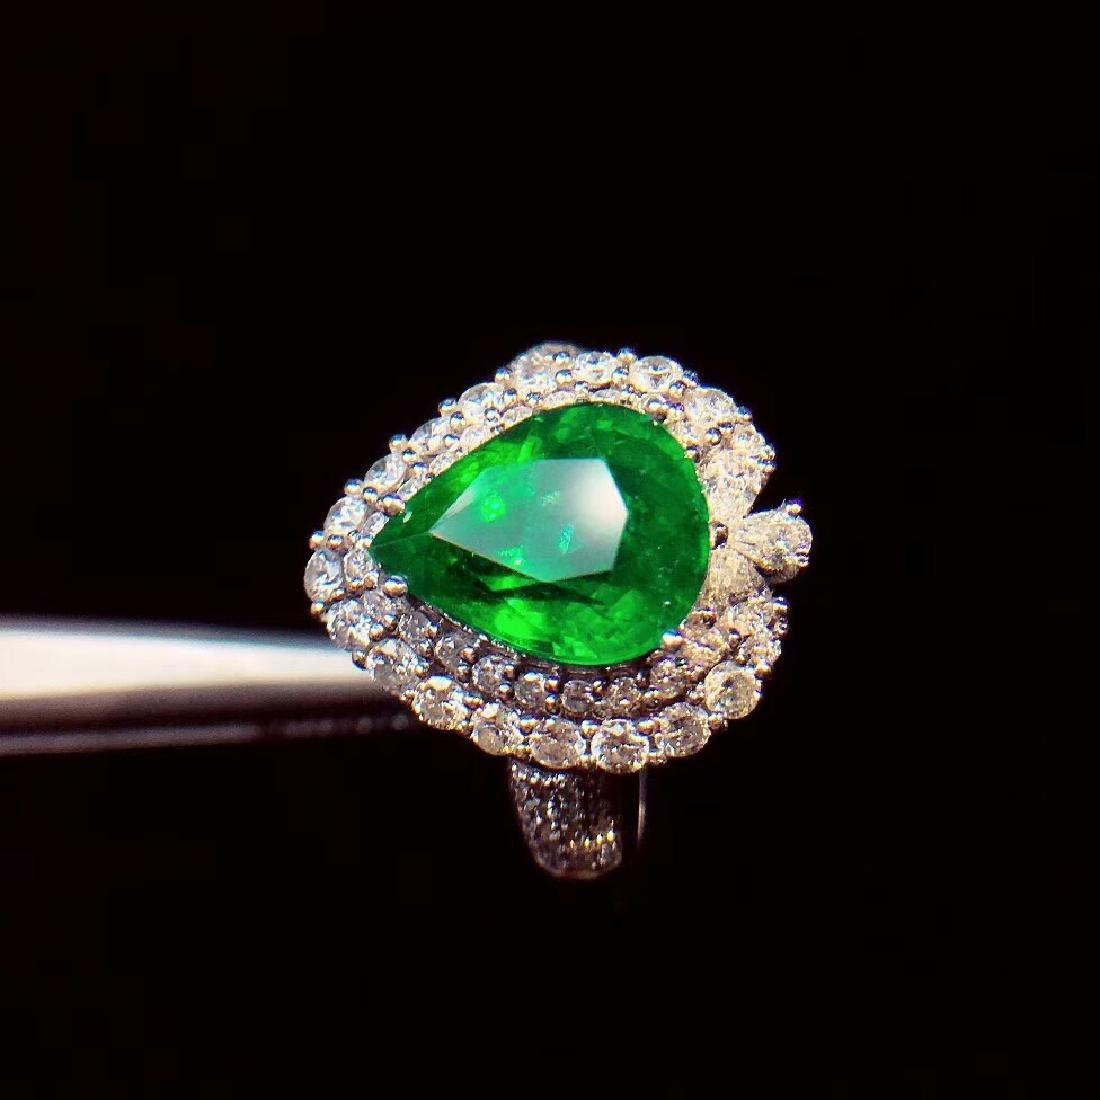 4ct Emerald Ring in 18kt white Gold - 3